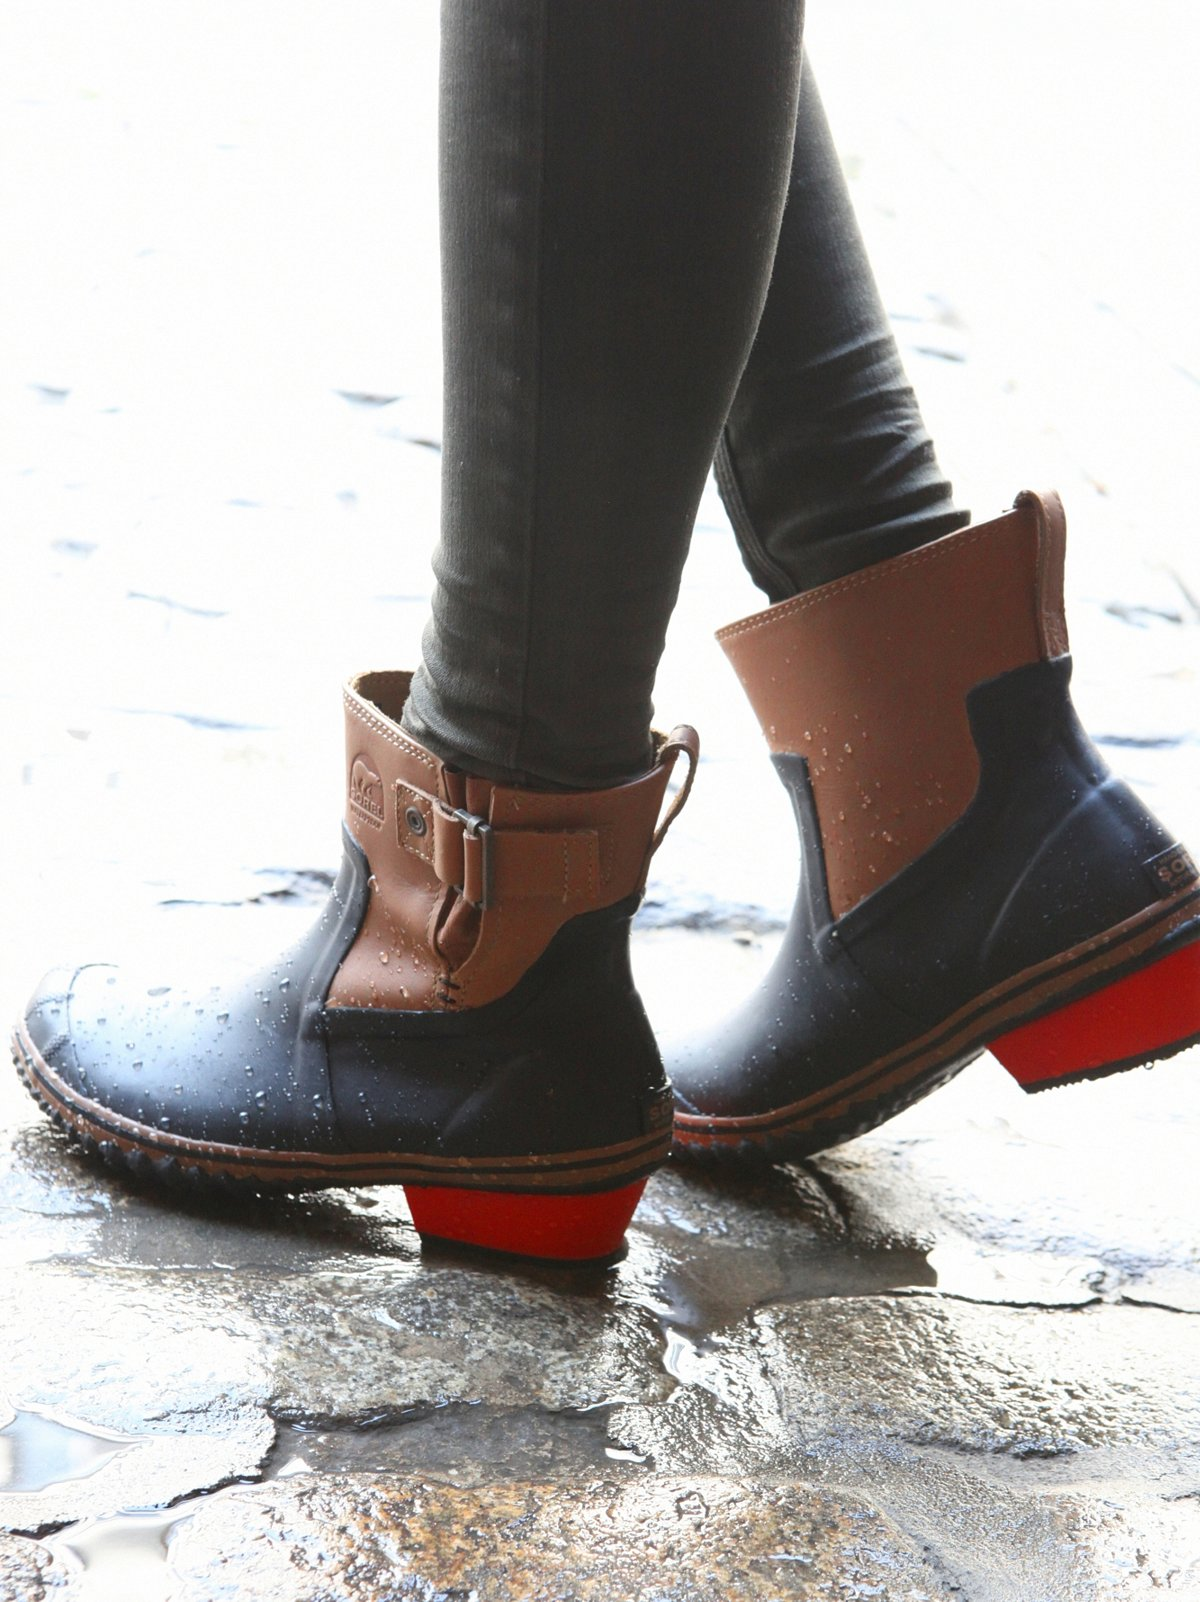 Designer ankle boots sale | Shop women's fashion ankle boot styles in chelsea, leather & suede designs. Buy luxury fashion brands at discount prices at THE OUTNET.